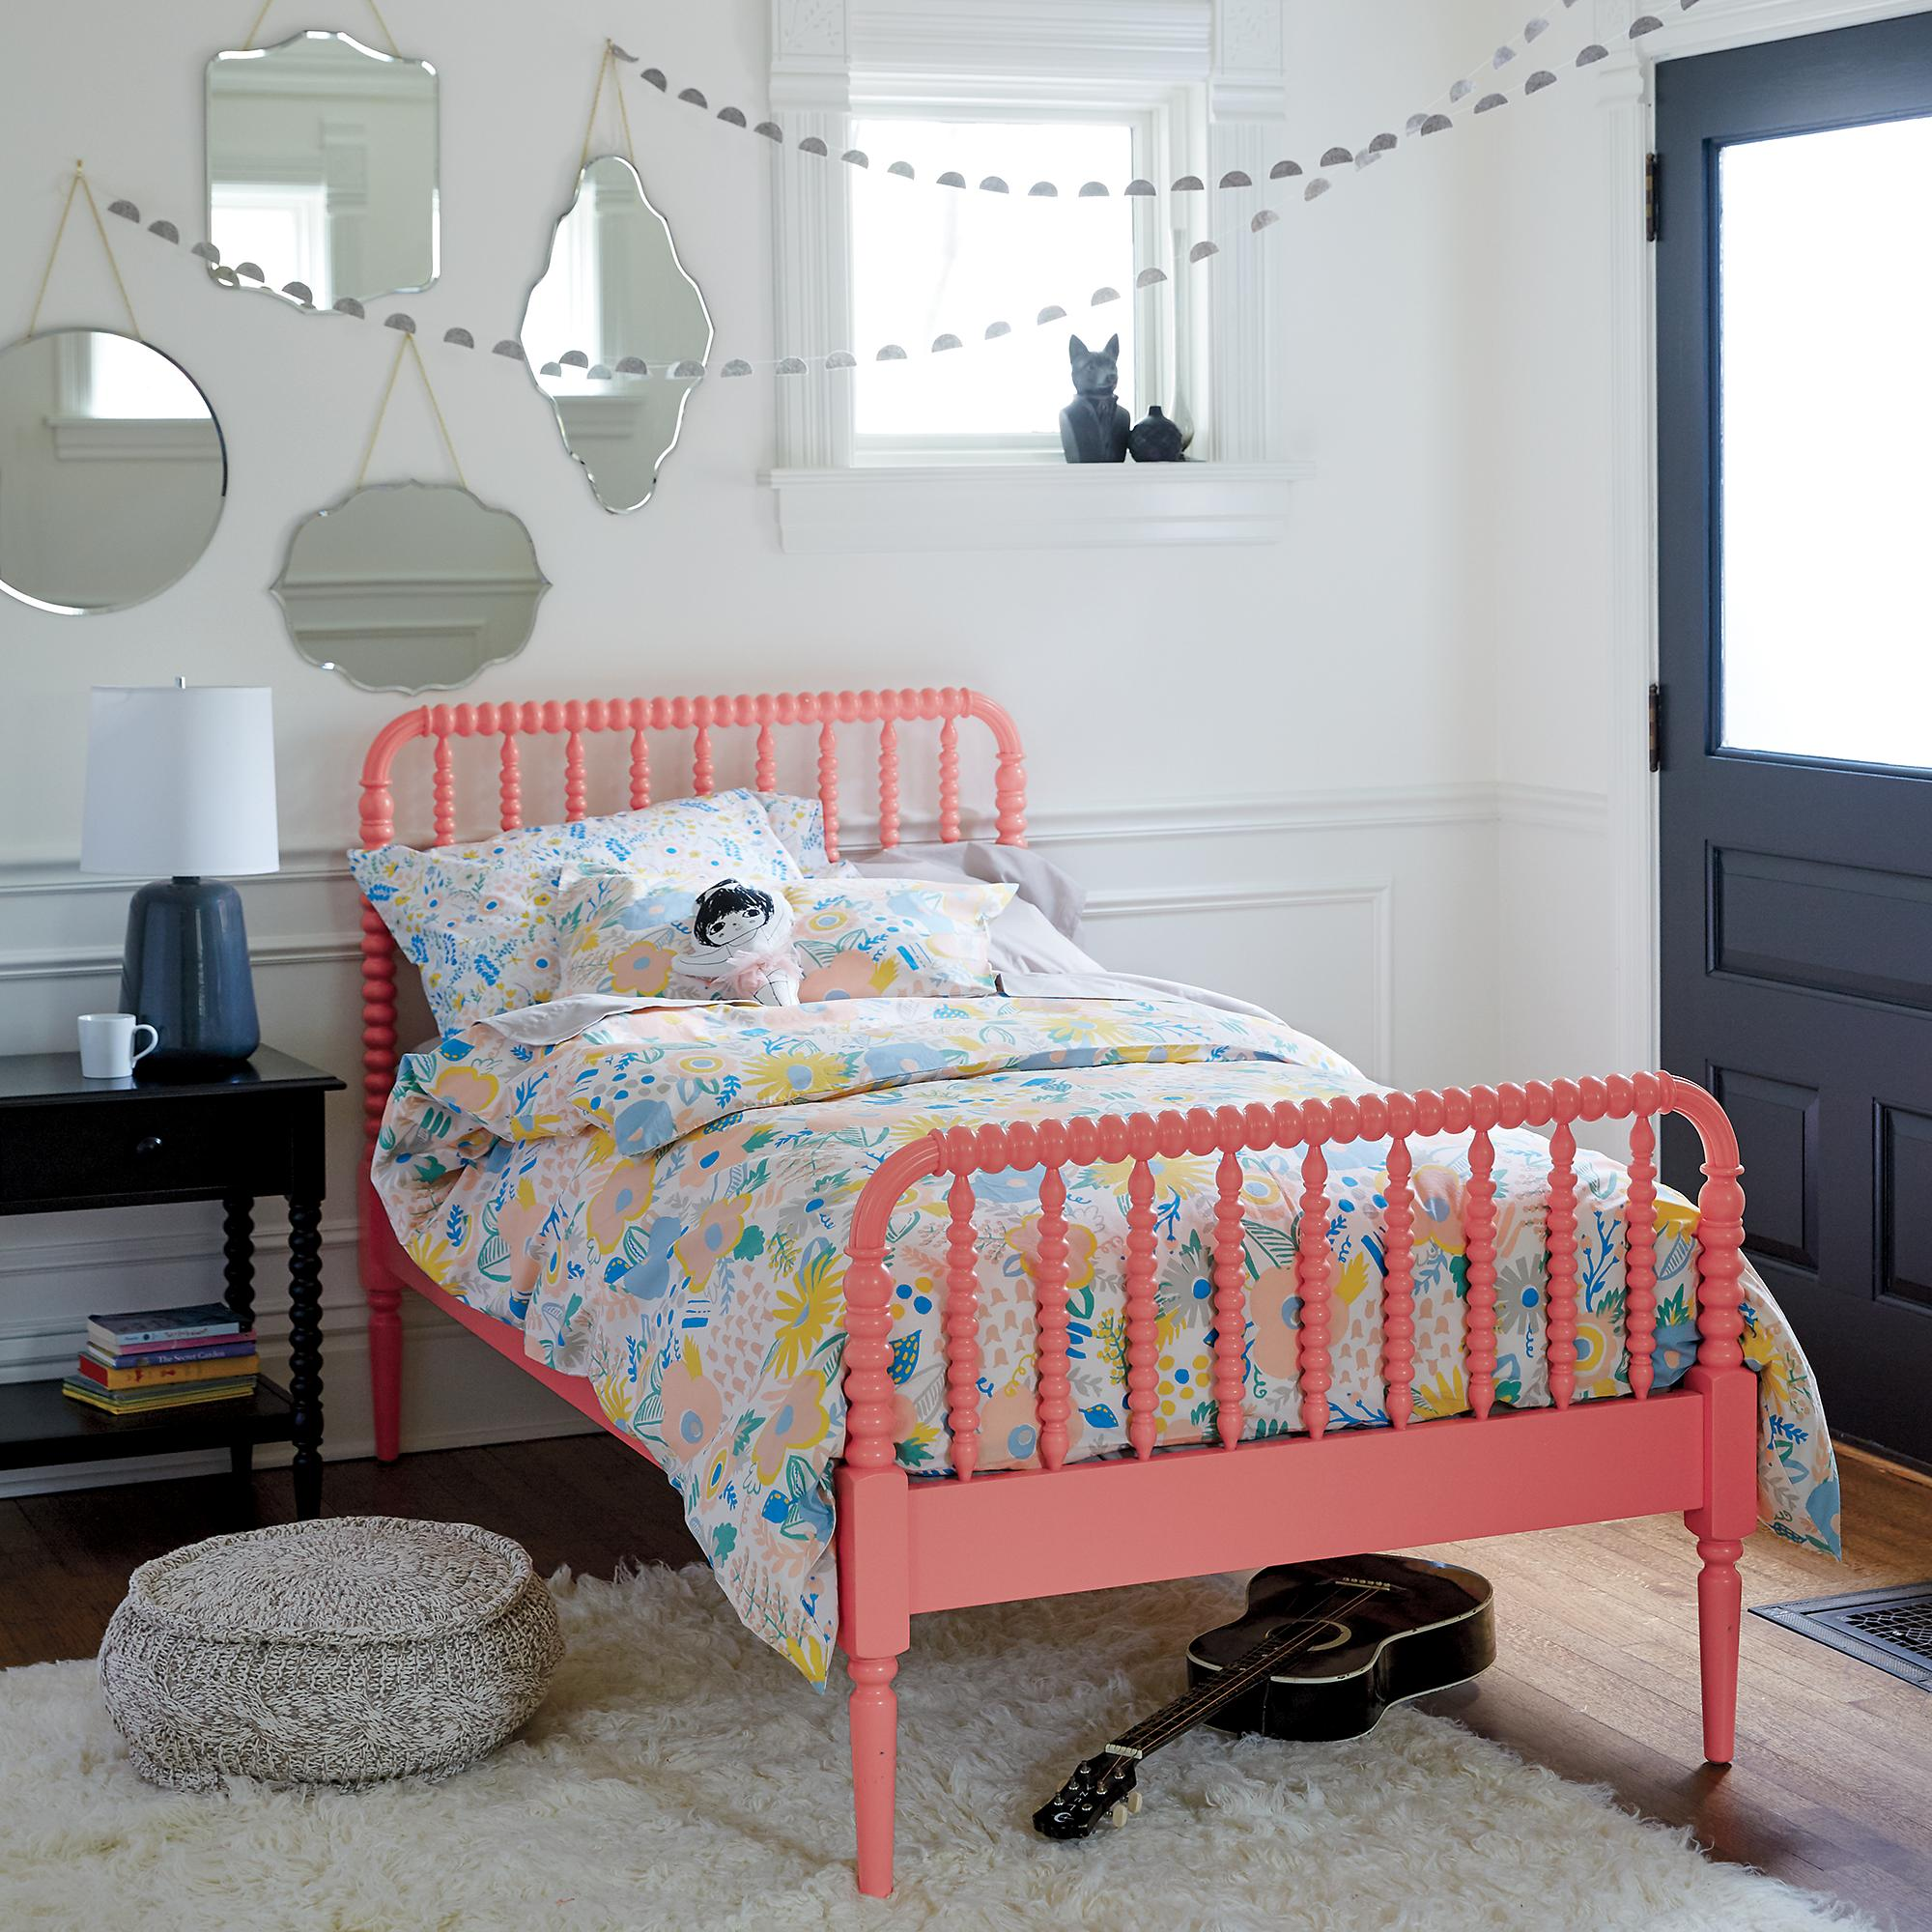 Refinery29 Lets Play With Cute Room Ideas